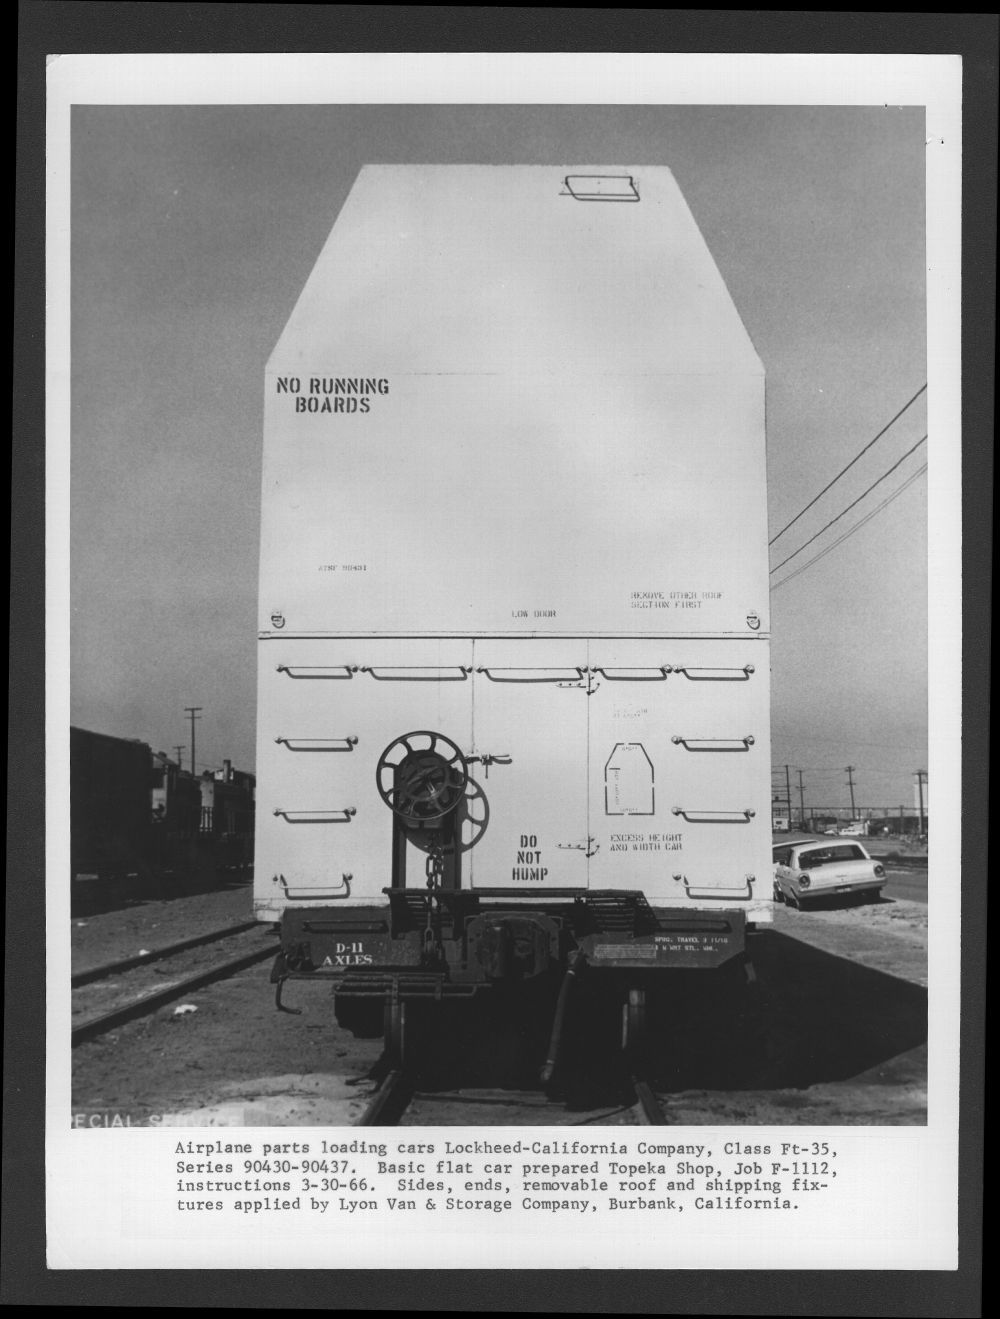 Atchison, Topeka & Santa Fe Railway  car built to carry airplane parts